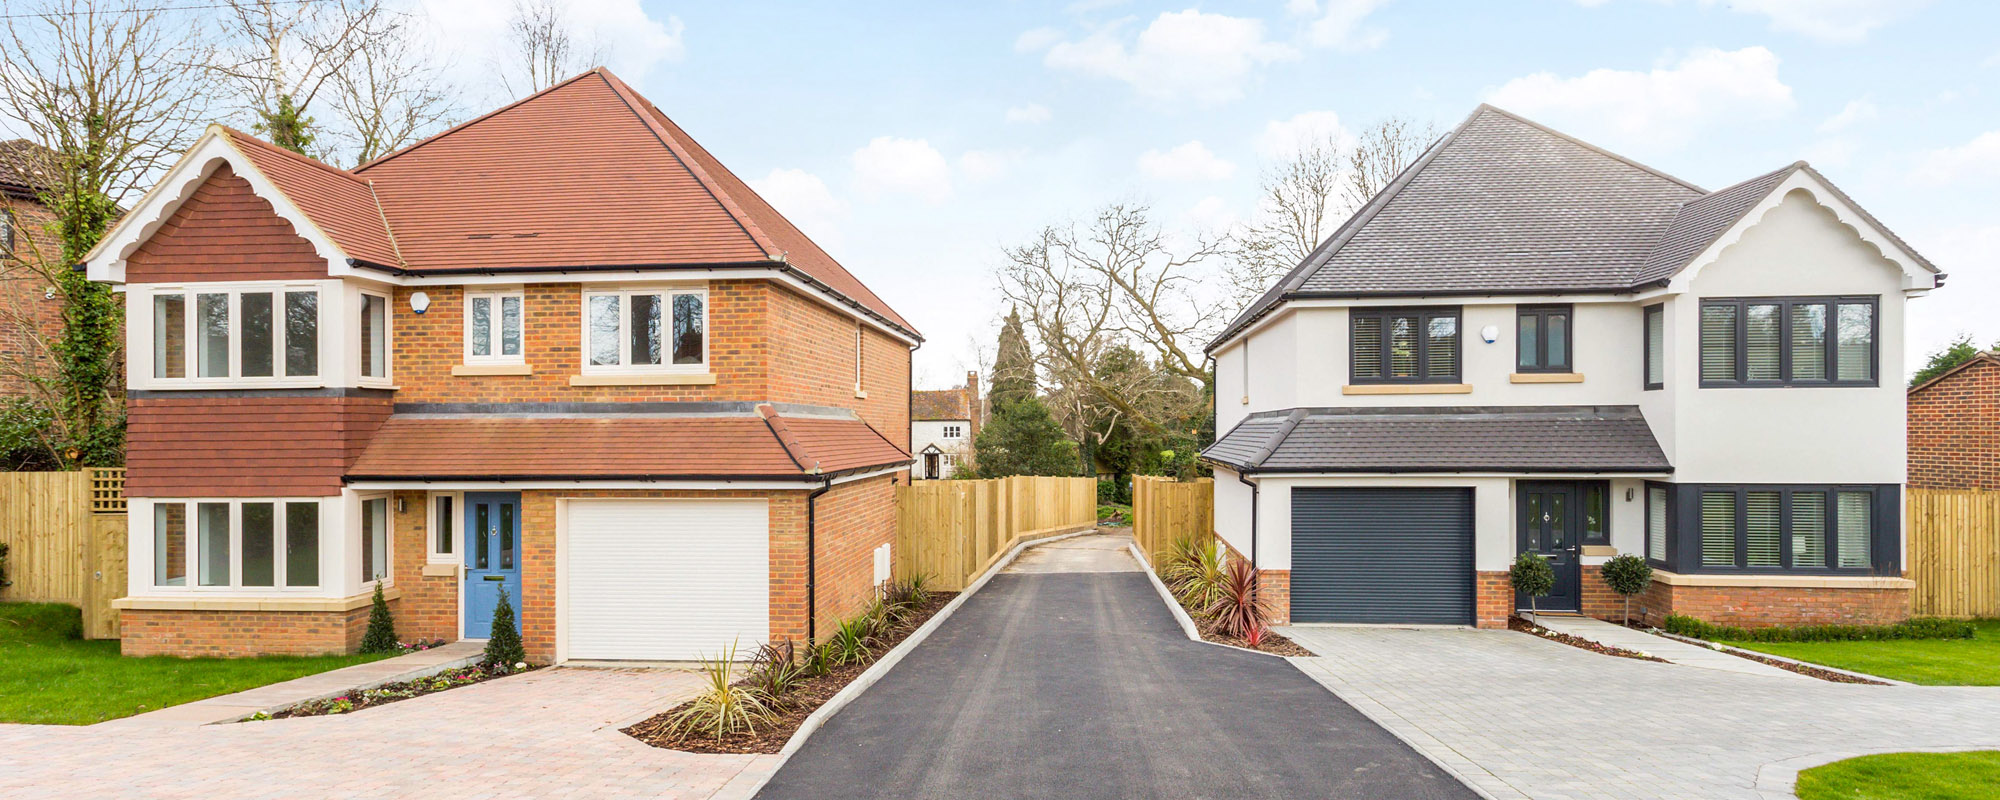 The Oaks East Grinstead <a href='/development/TheOaks'>more details</a>